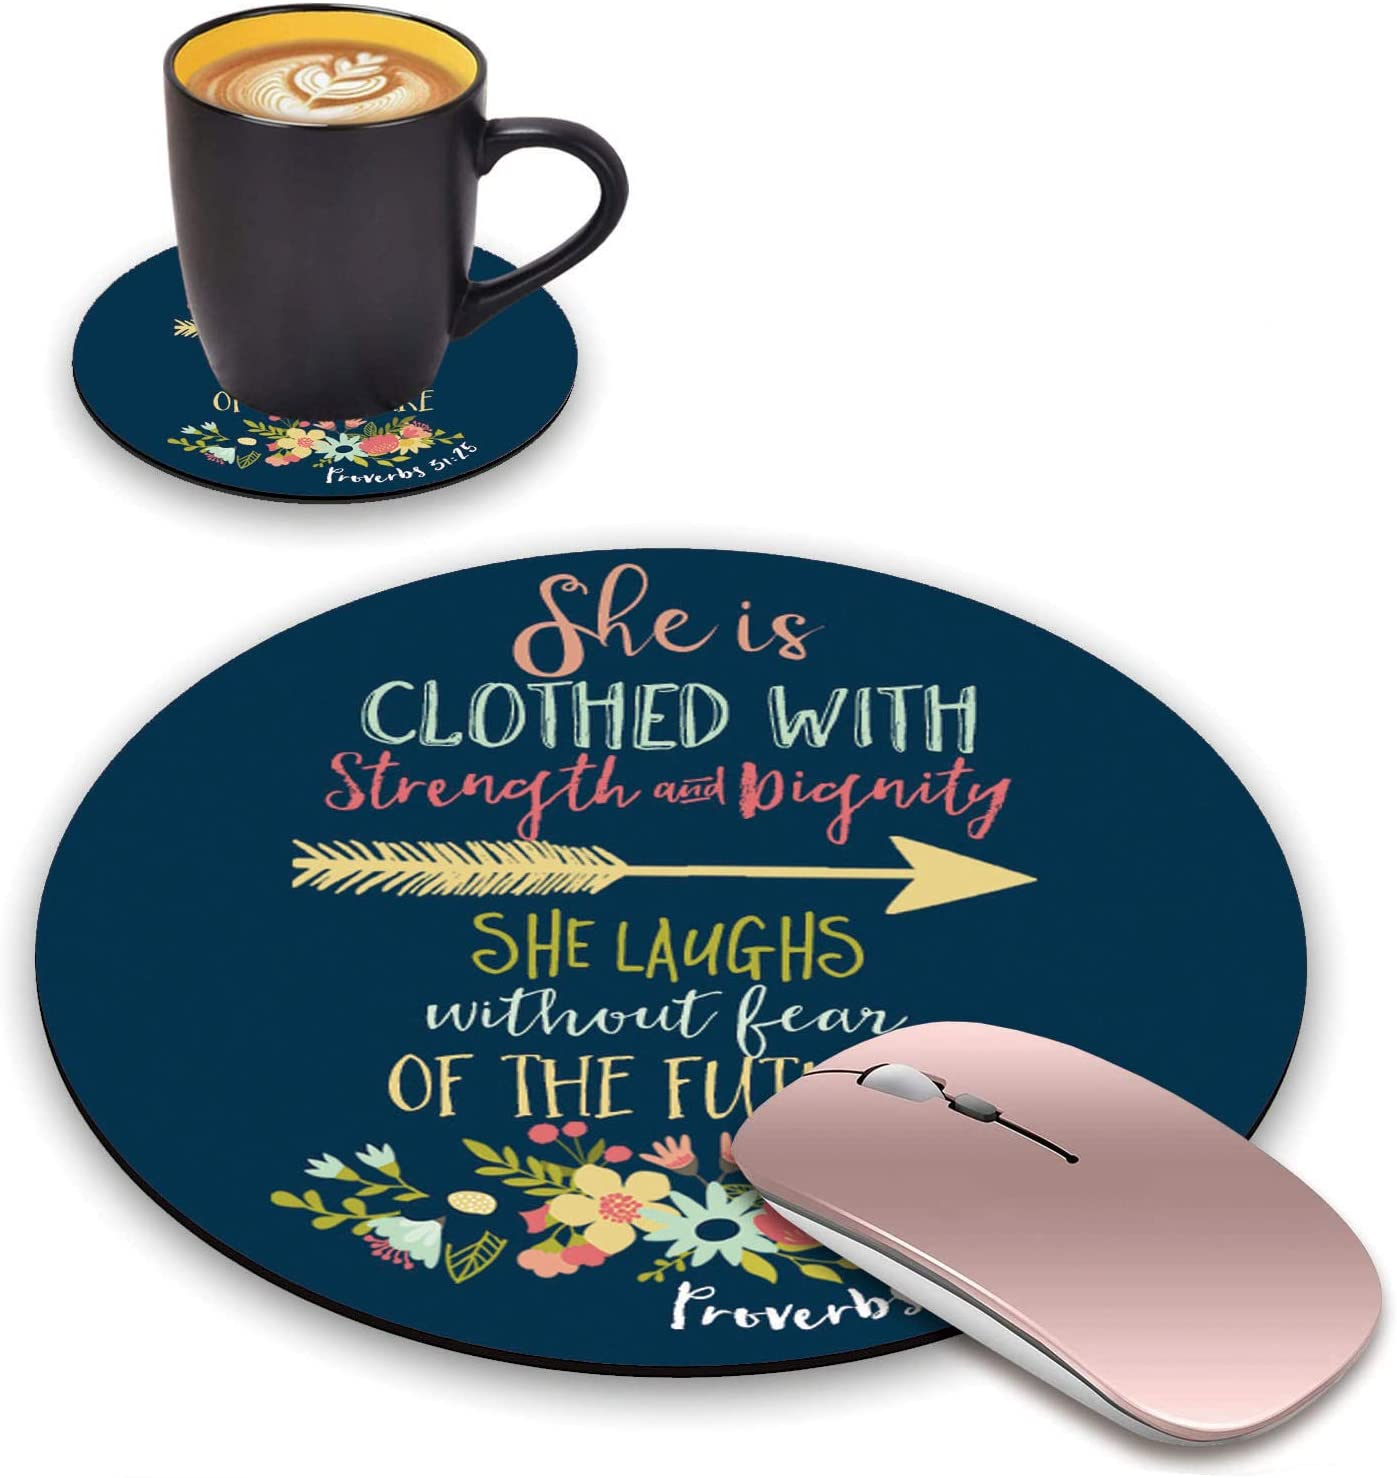 ChaTham Round Mouse Pad with Coasters Set, Christian Quotes Bible Verse Proverbs 31:25 Mouse Pad, Non-Slip Rubber Base Round Mouse Pads for Laptop Compute Working Home Office Accessories